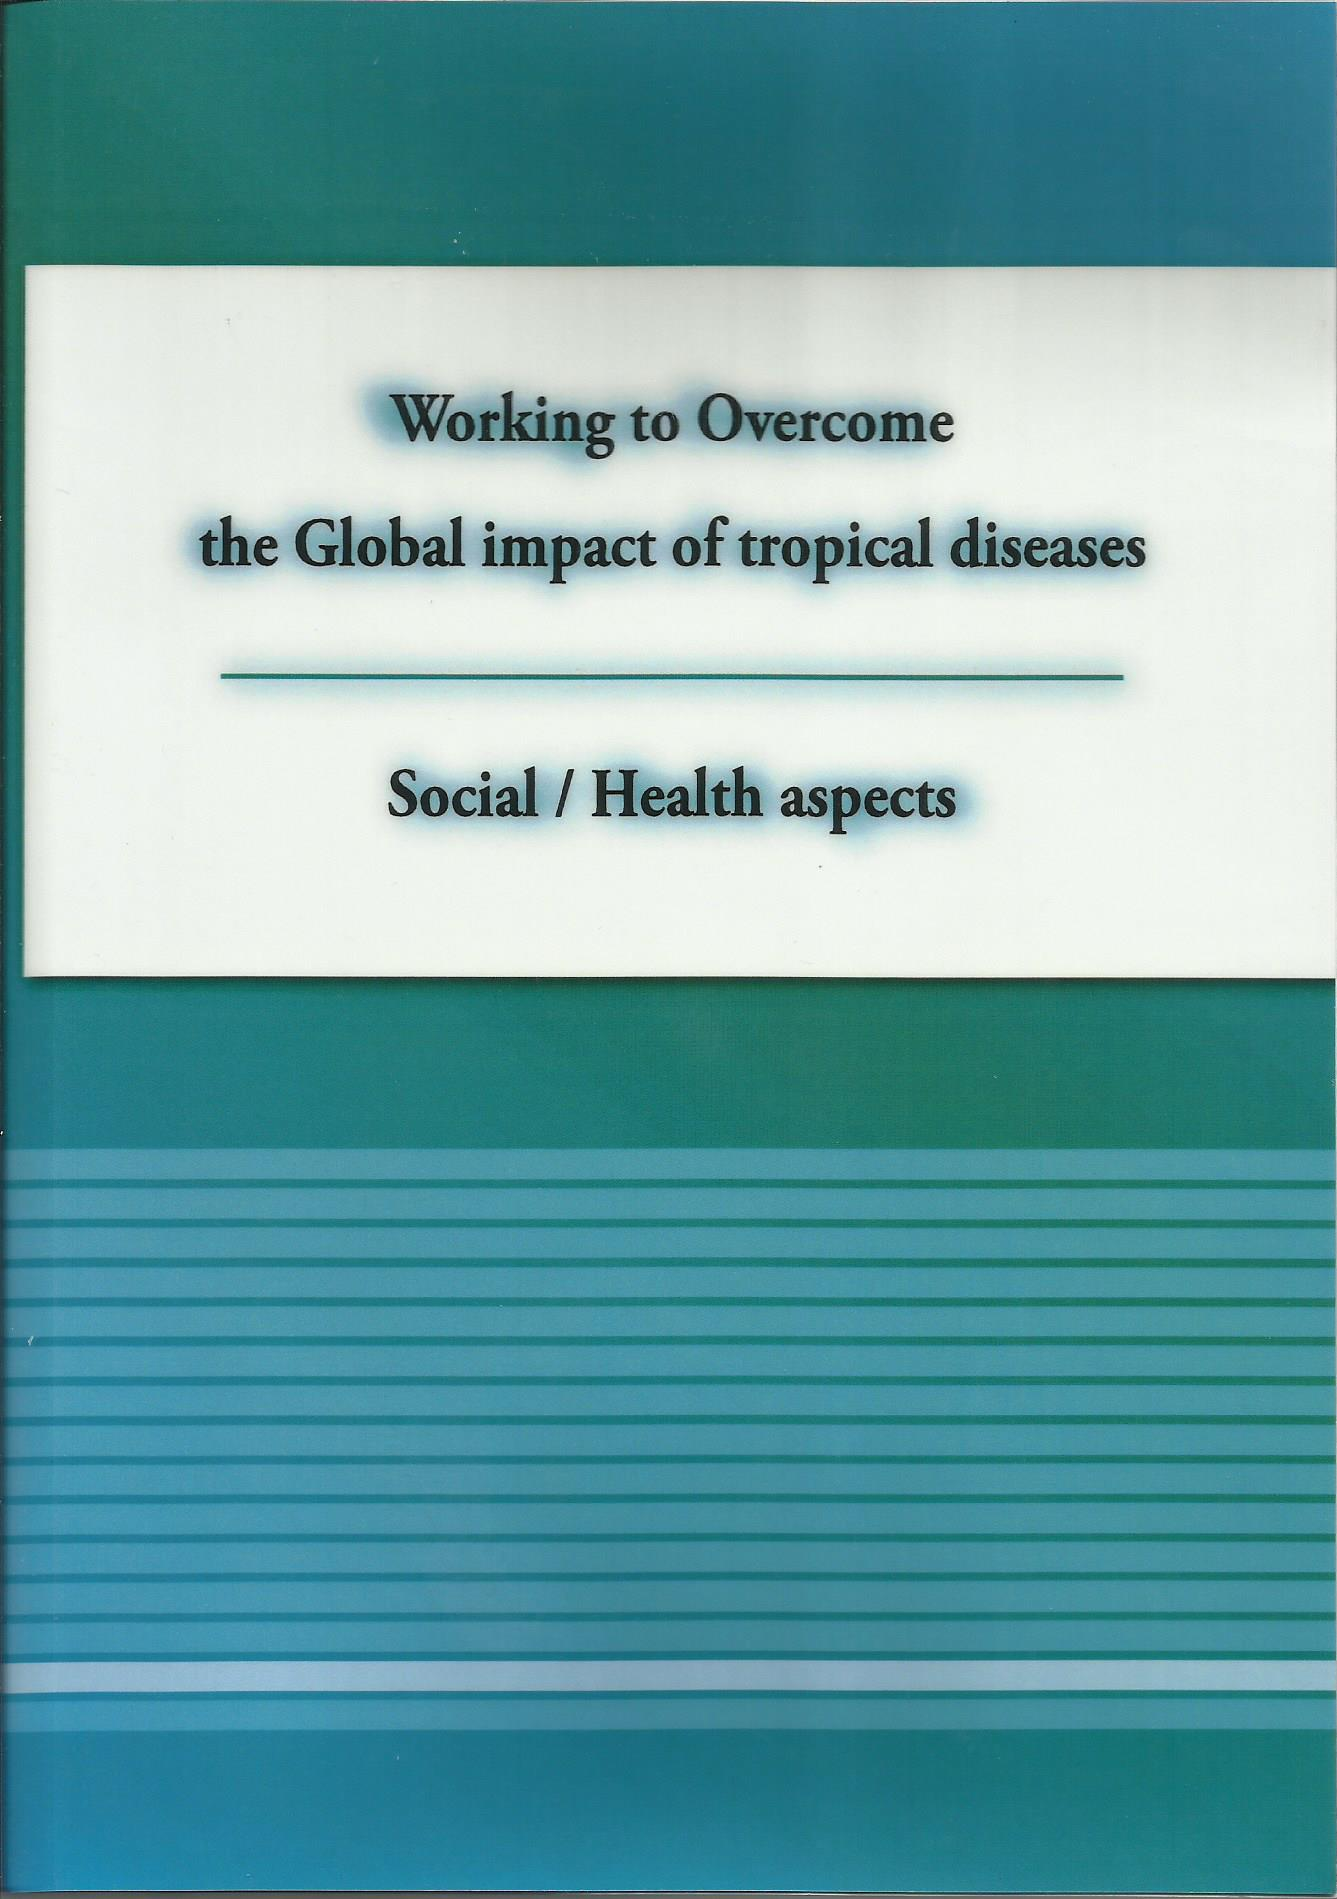 Working to Overcome the Global impact of tropical diseases